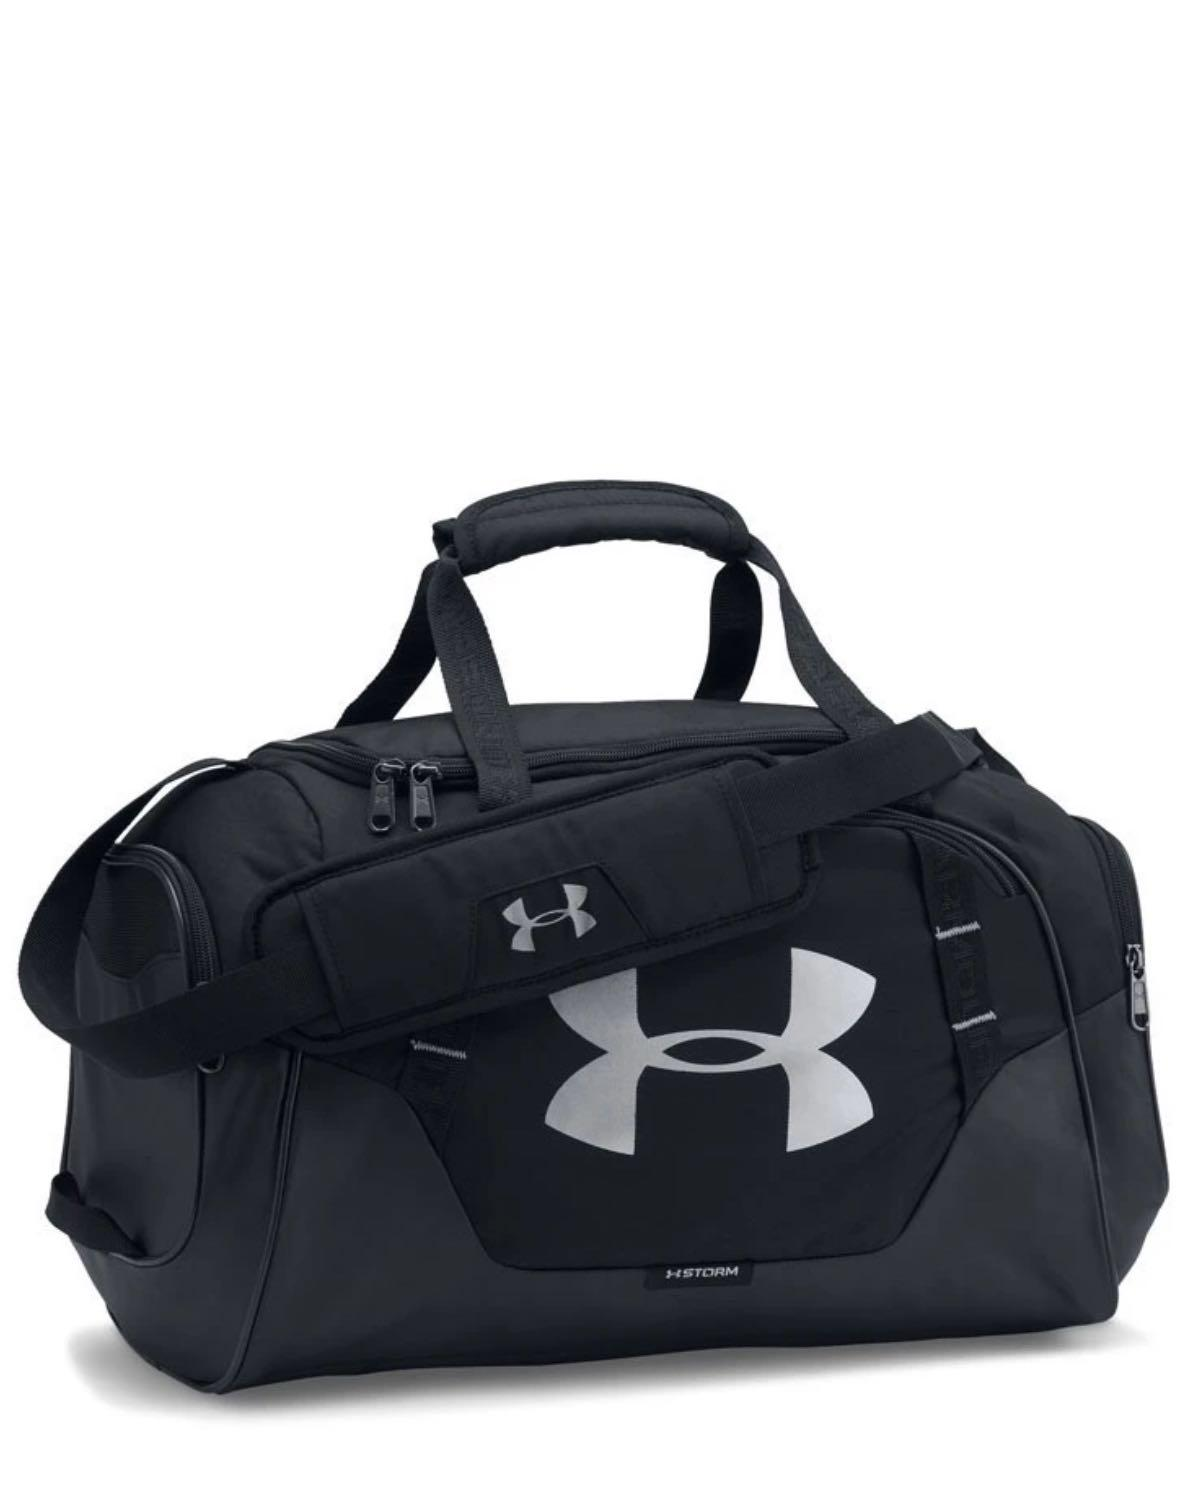 Under Armour Undeniable Duffle 3.0 Bag